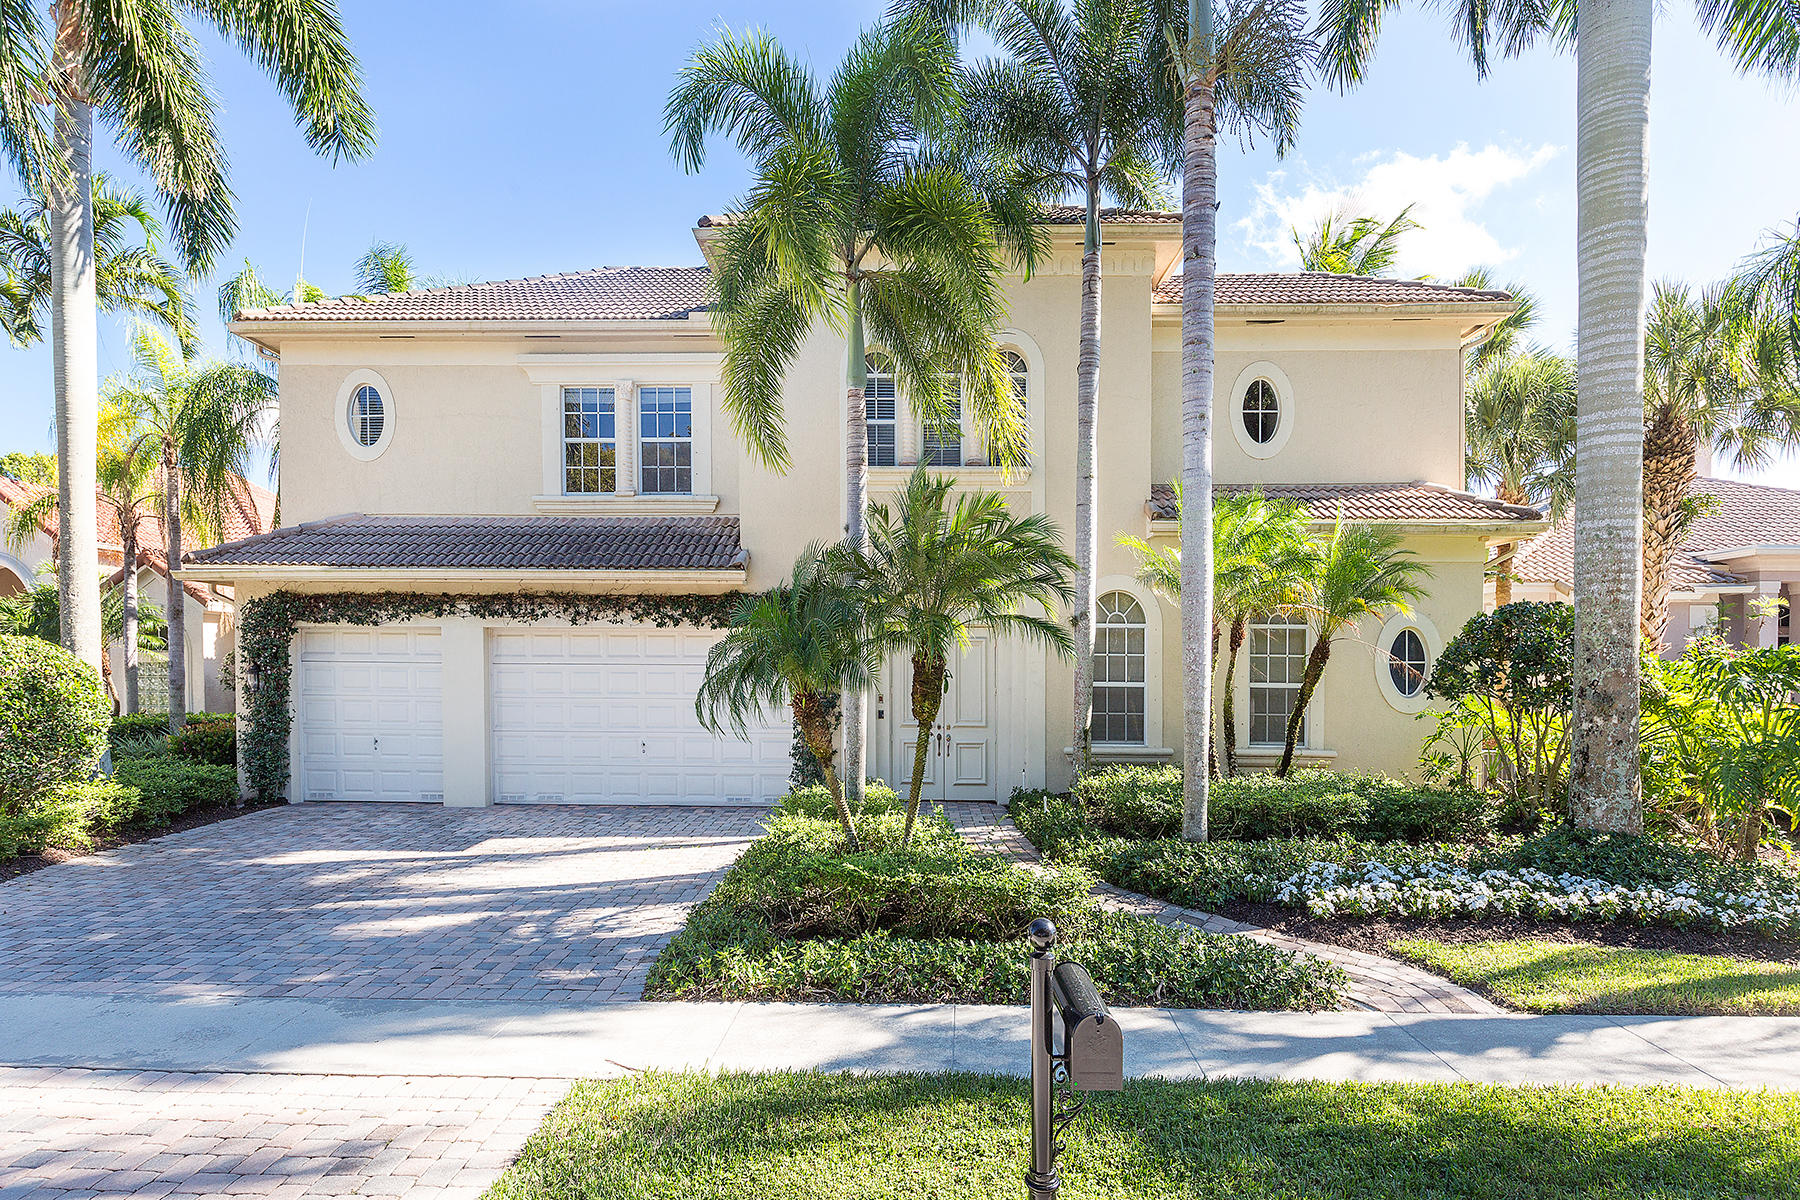 12500 Sunnydale Drive, Wellington, Florida 33414, 5 Bedrooms Bedrooms, ,4.1 BathroomsBathrooms,Single Family,For Rent,Palm Beach Polo,Sunnydale,RX-10535525